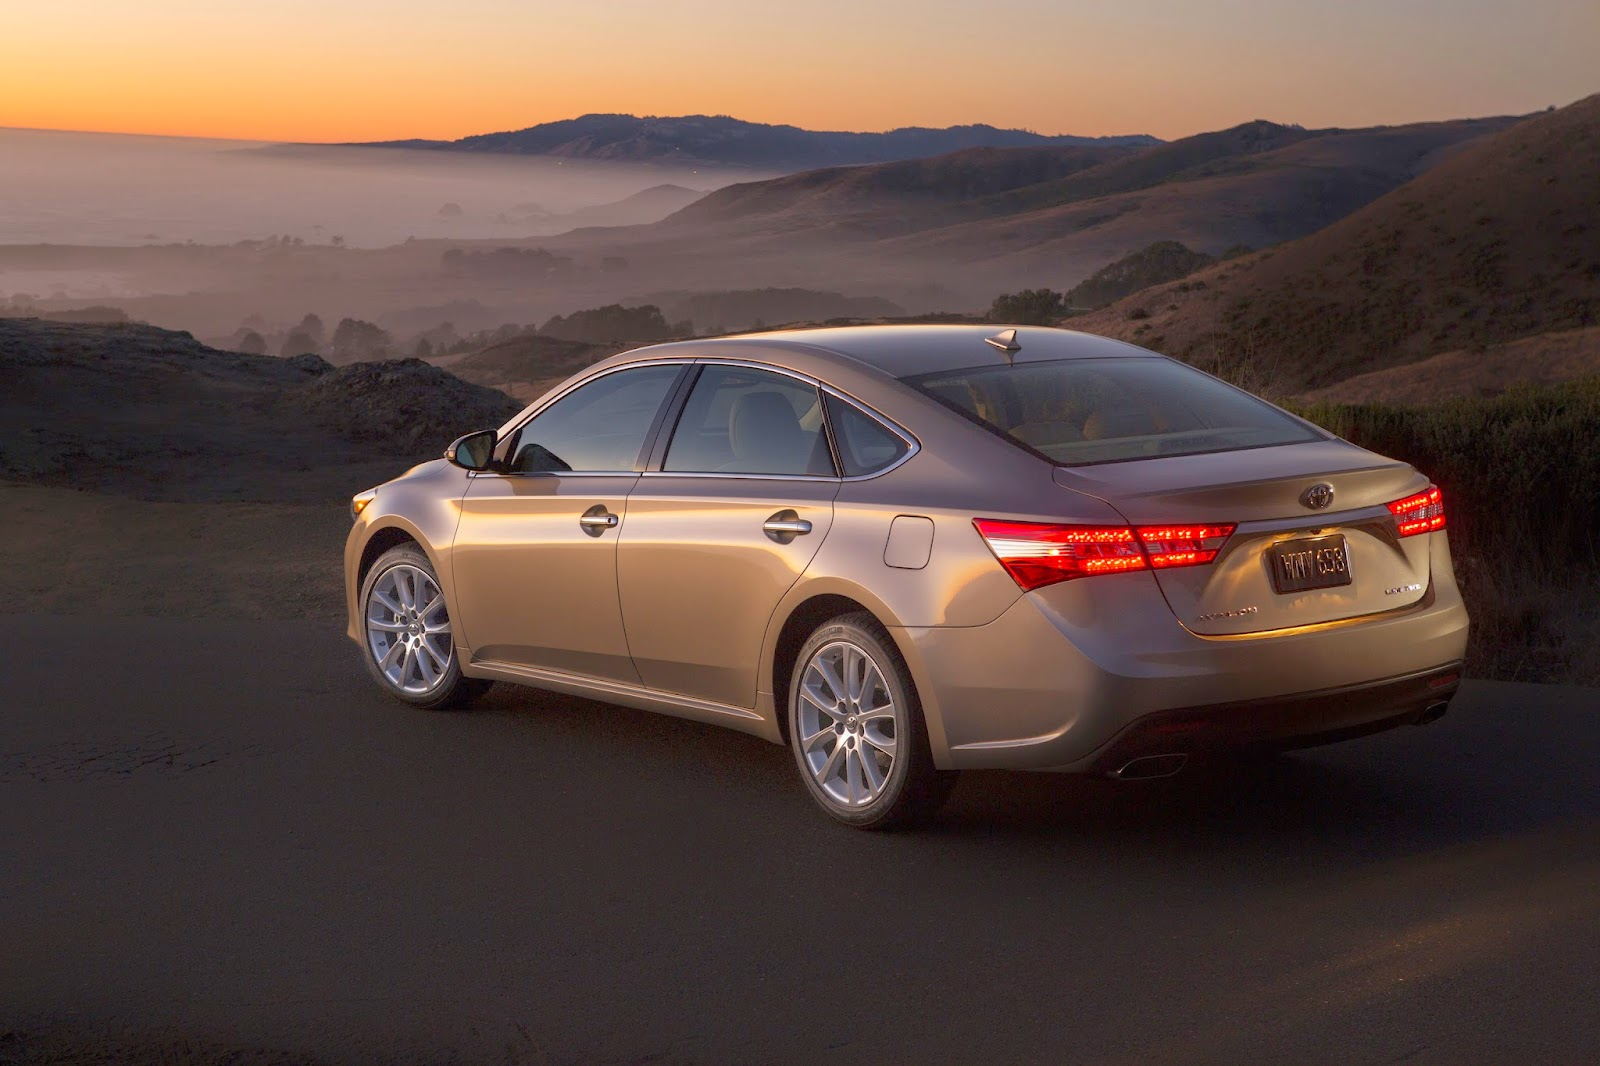 Rear 3/4 view of the 2014 Toyota Avalon